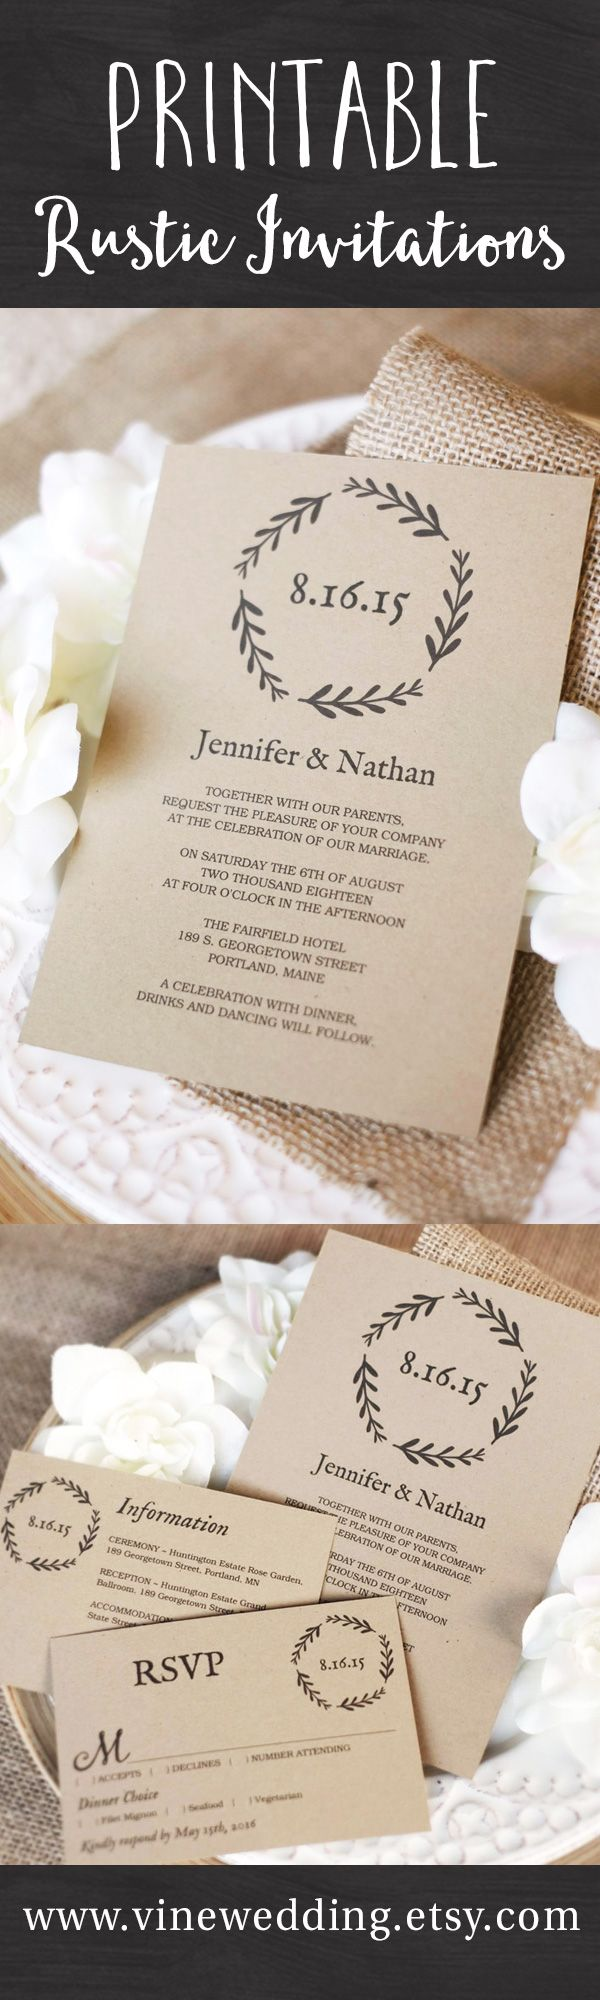 Beautiful Rustic Wedding Invitations. Editable Instant Download Templates  You Can Print As Many As You  Create Invitations Online Free No Download